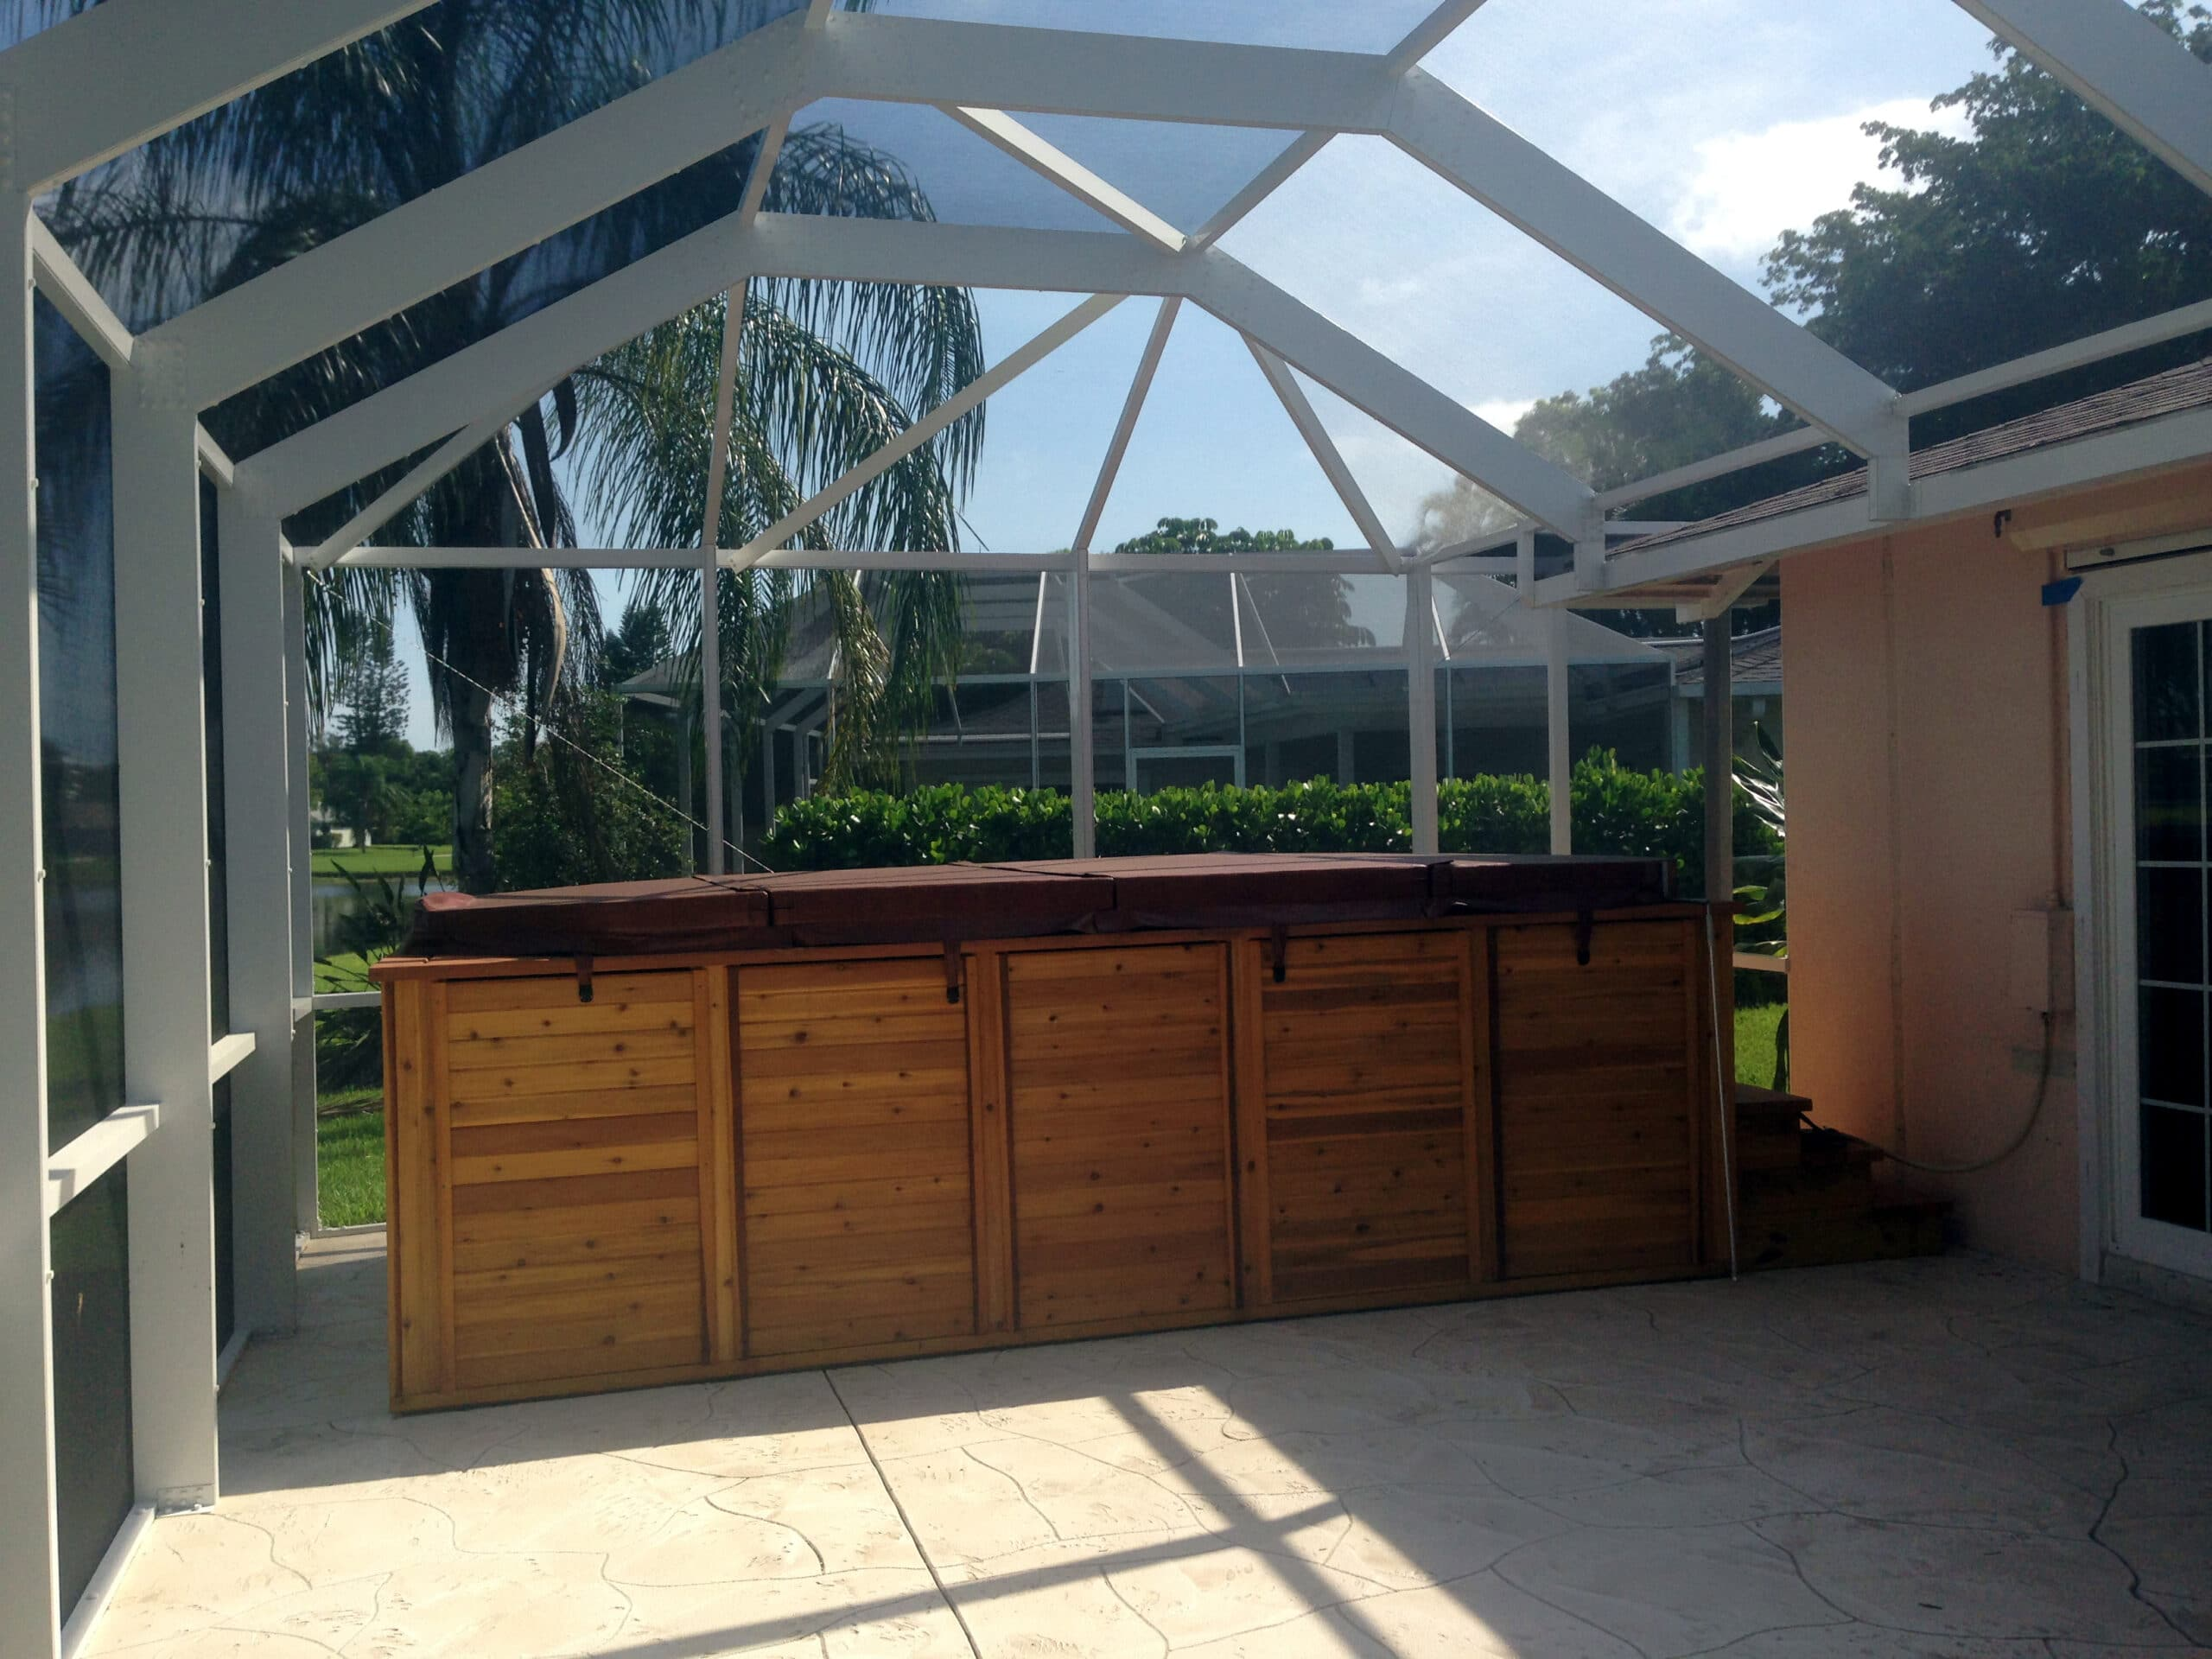 Hot Tub Patio Enclosure In Naples Area - FL Screens